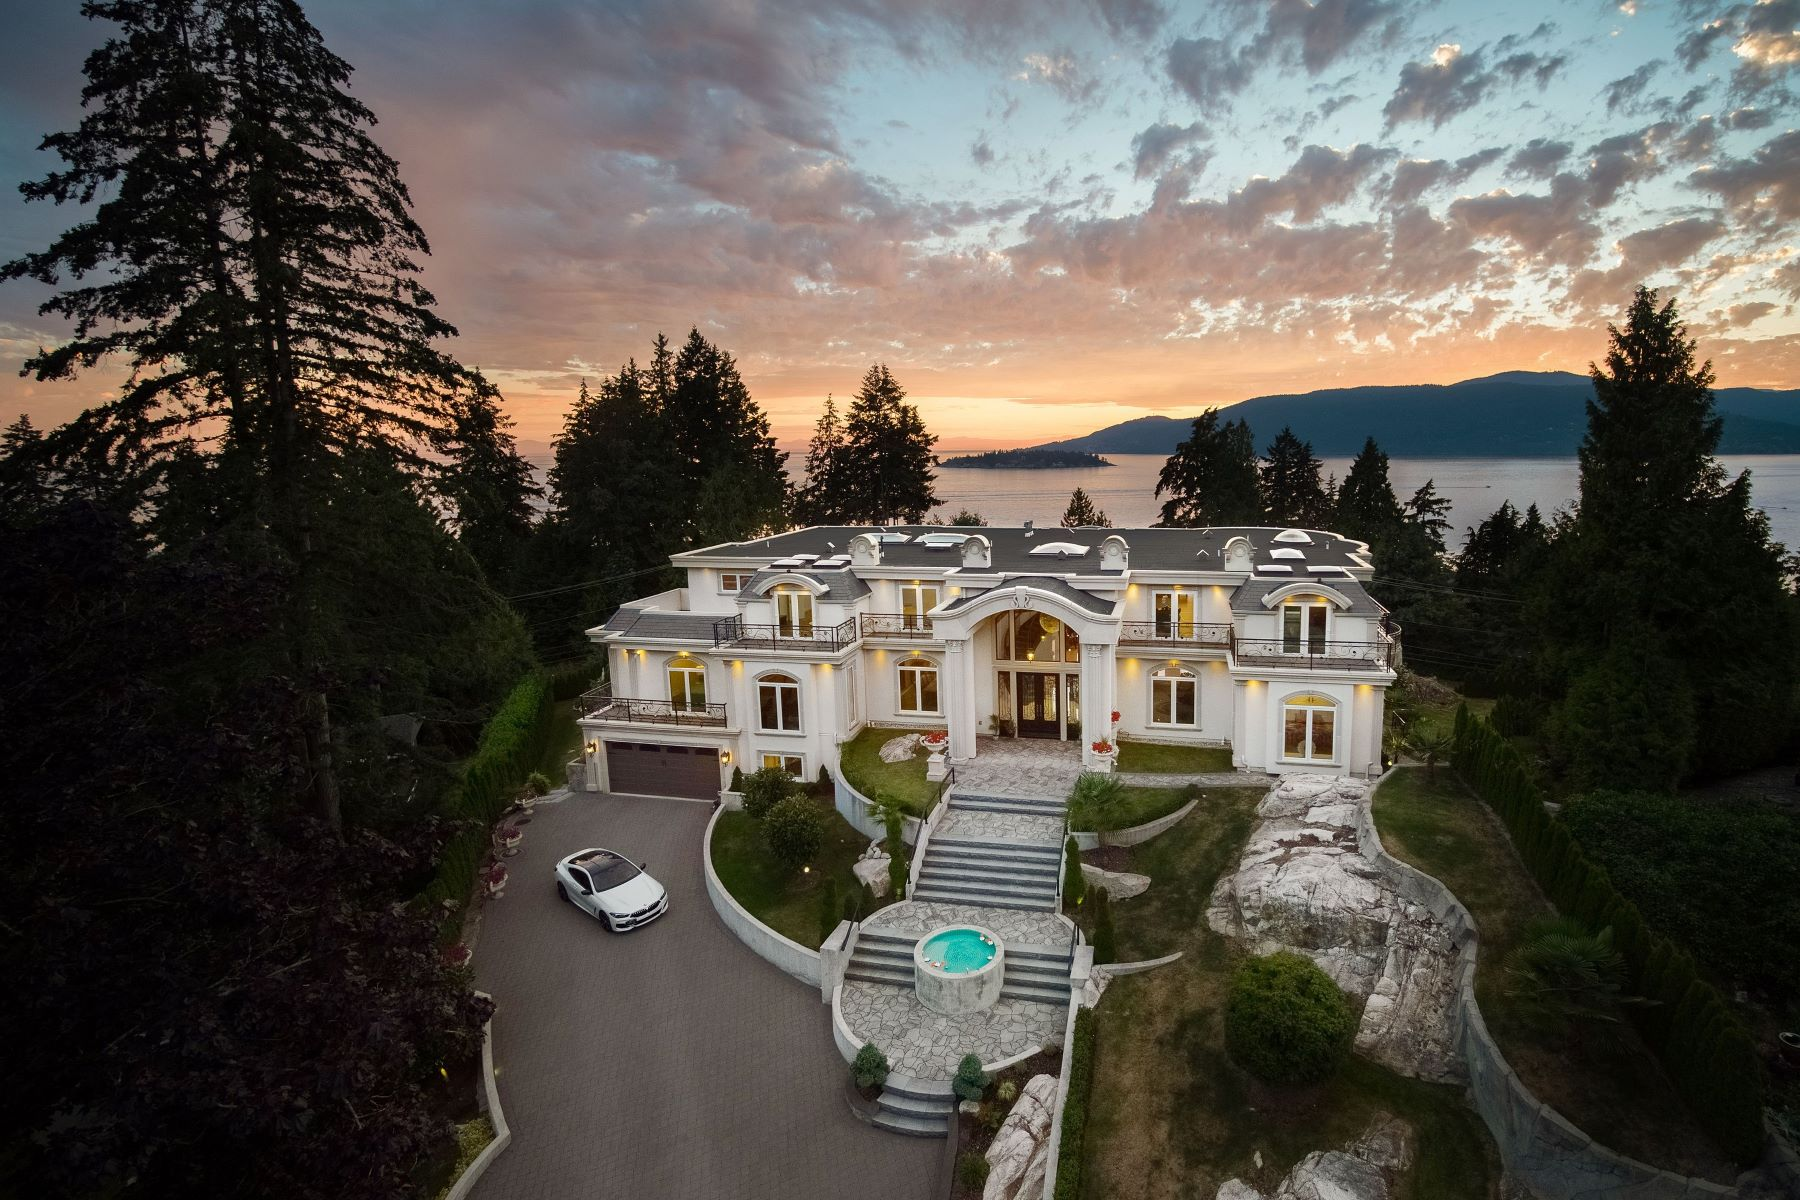 Single Family Homes for Sale at Italian Designer Mansion 5358 Kensington Crescent West Vancouver, British Columbia V7W 1M4 Canada